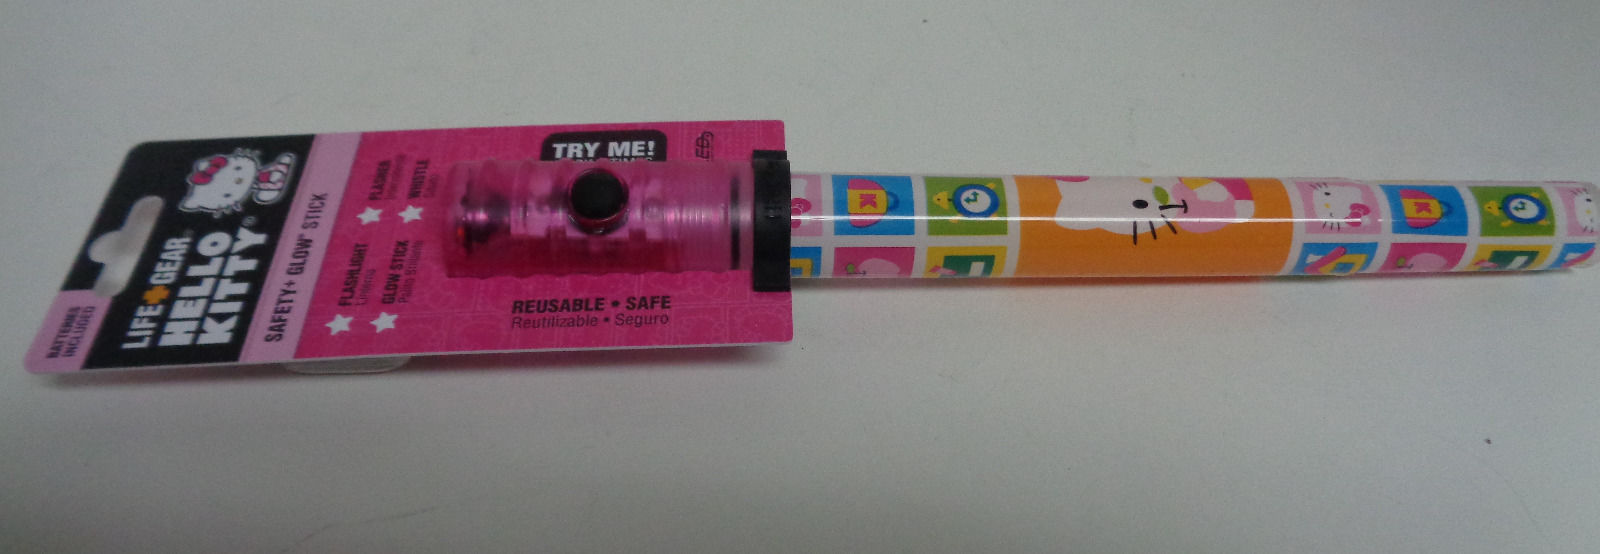 Hello Kitty Life Gear Safety Glow Stick Flashlight Whistle Strobe NWT 3 settings